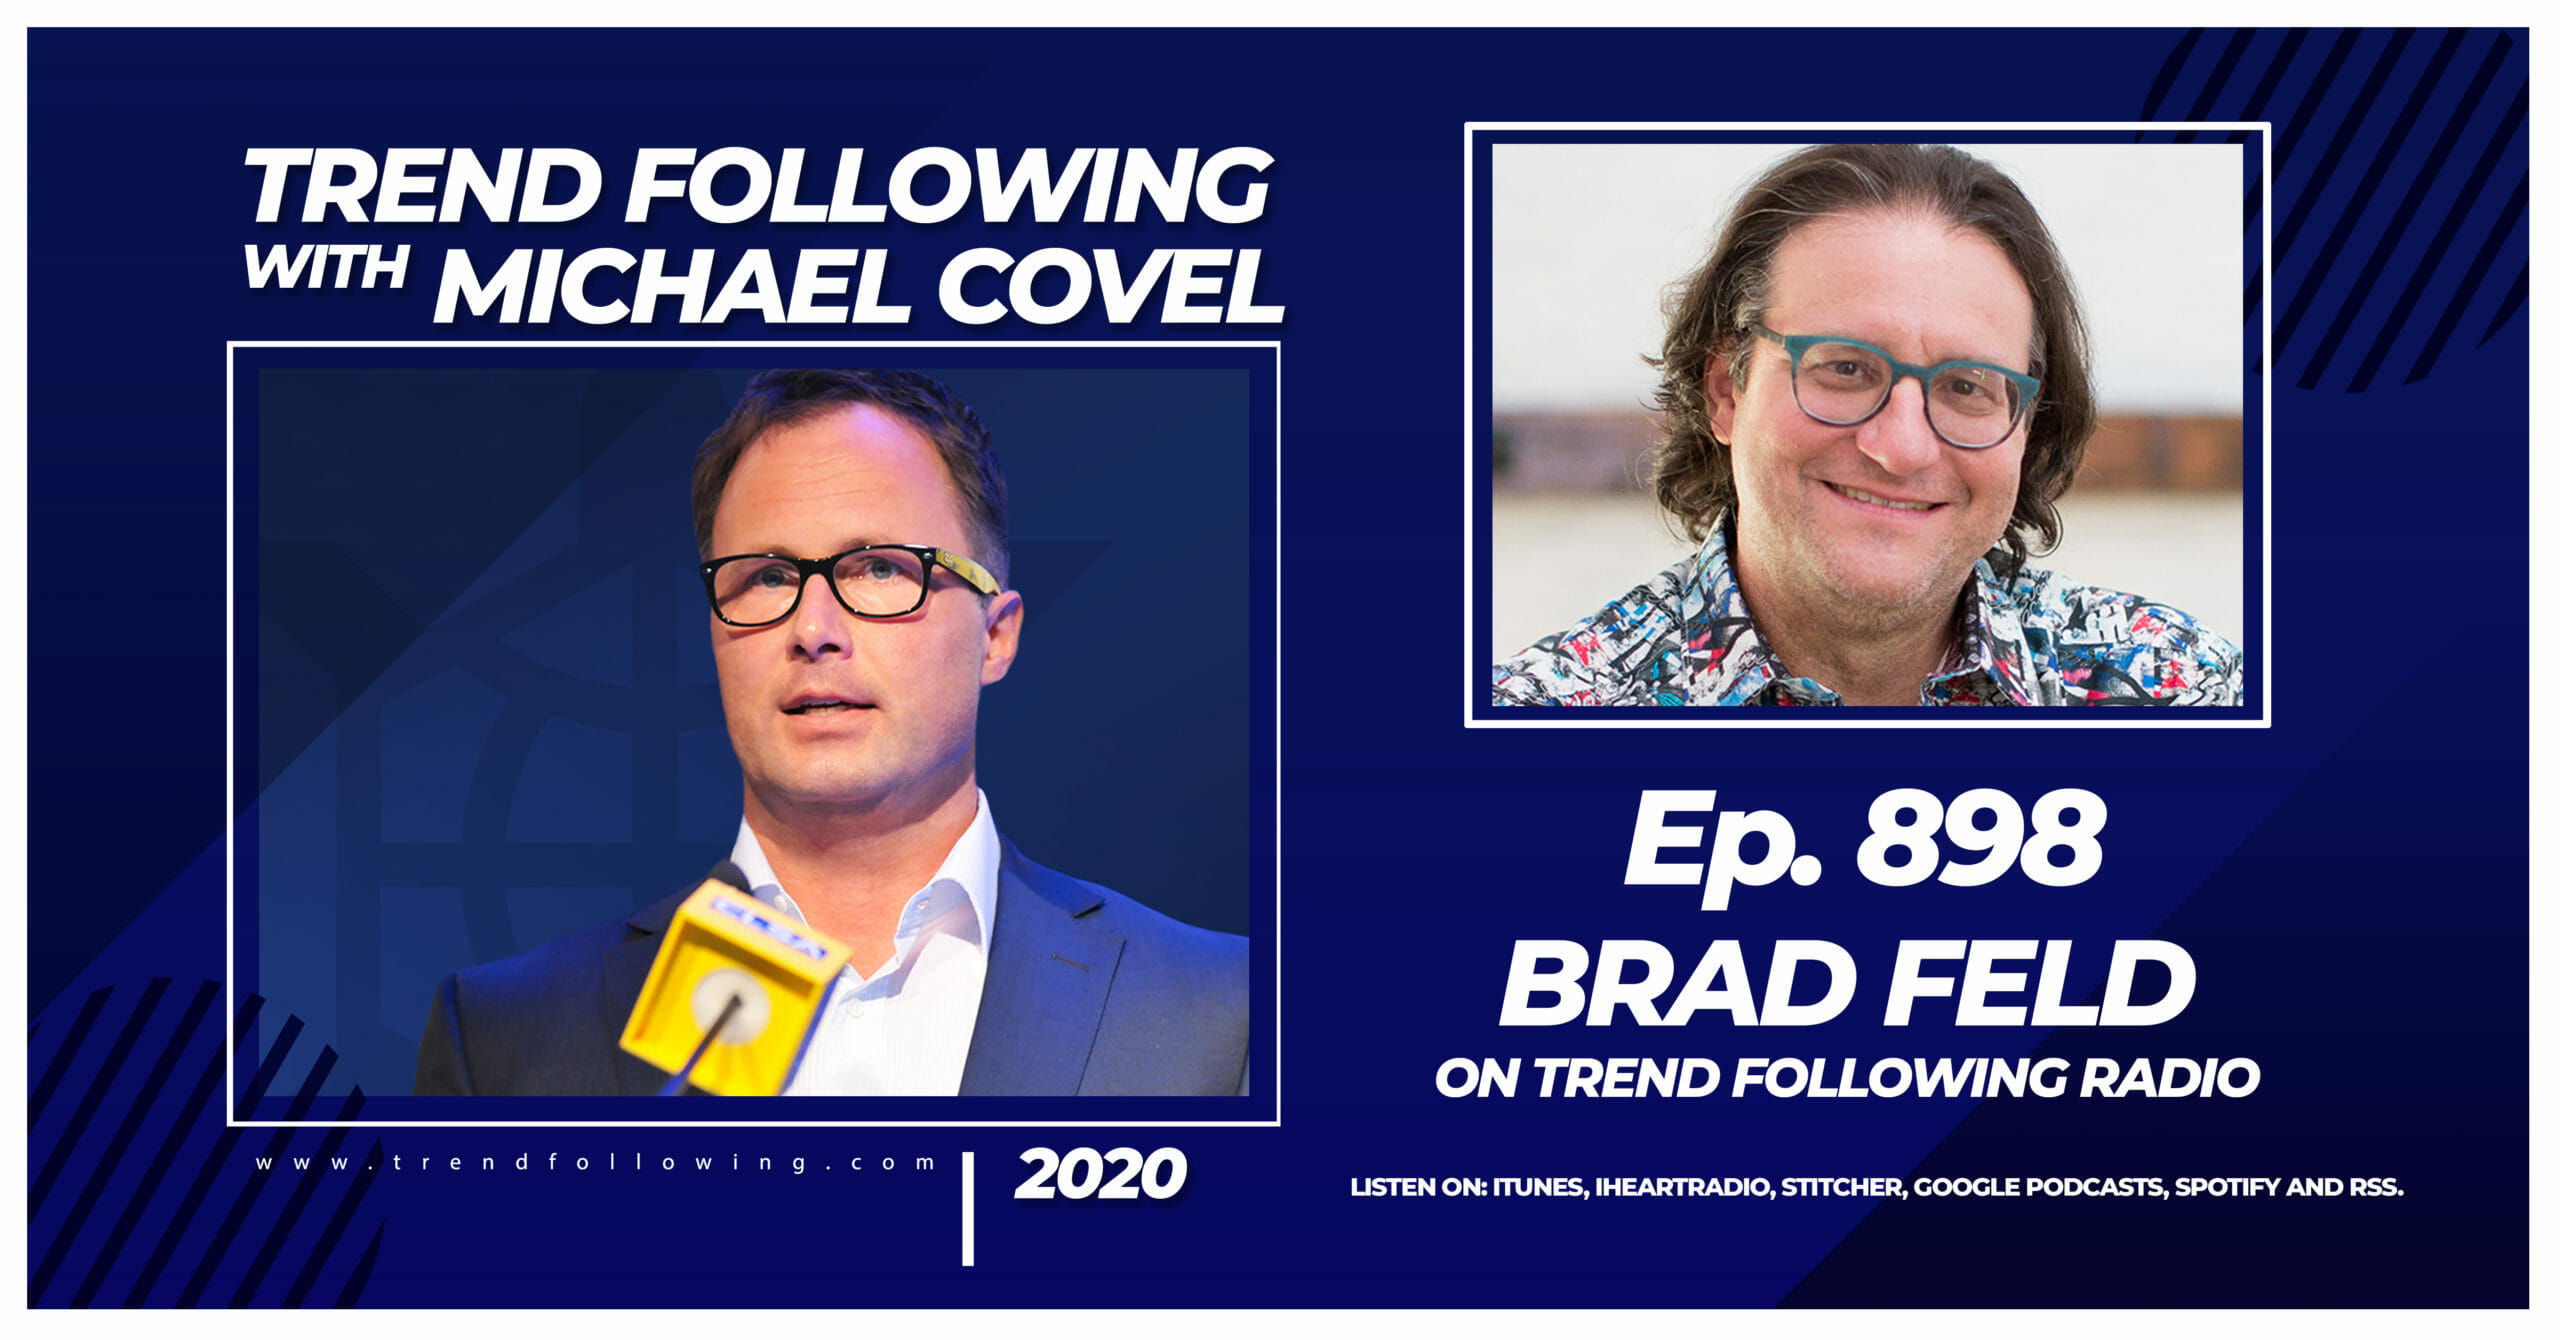 Ep. 898: Brad Feld Interview with Michael Covel on Trend Following Radio